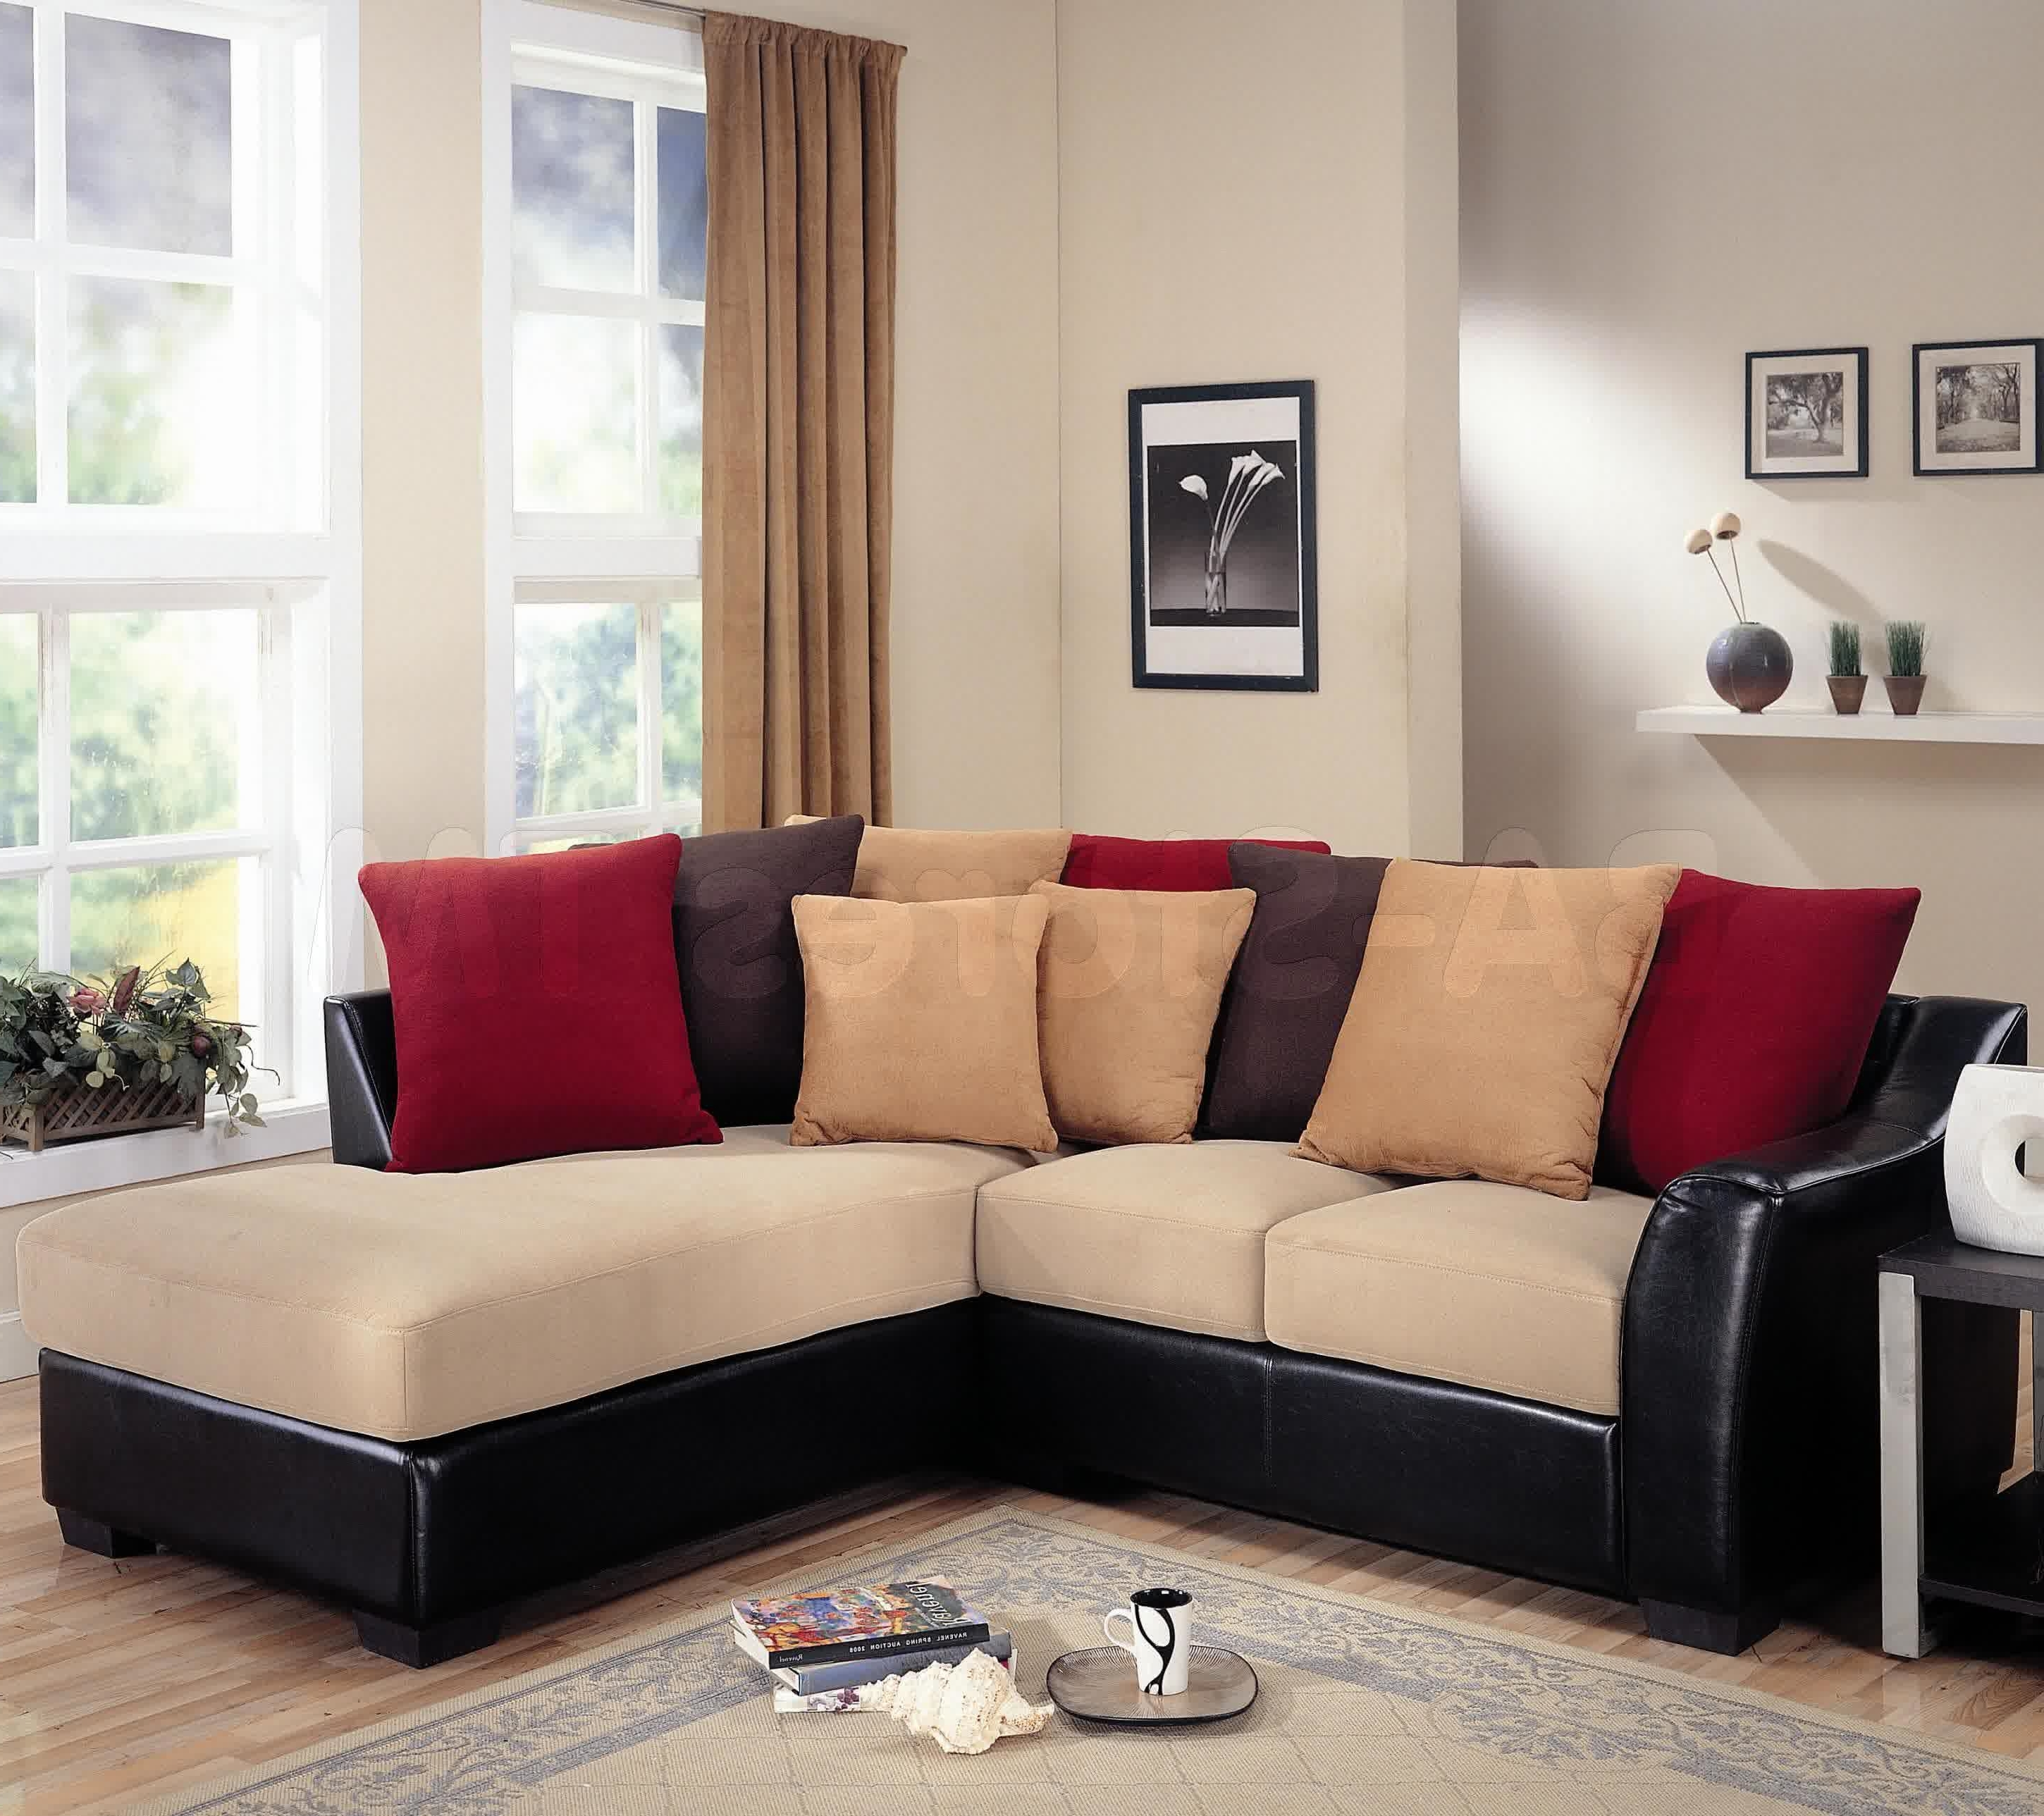 Clearance Sectional Sofas Within Favorite Home Designs : Bobs Living Room Sets Cheap Sectional Sofas Under (View 8 of 20)